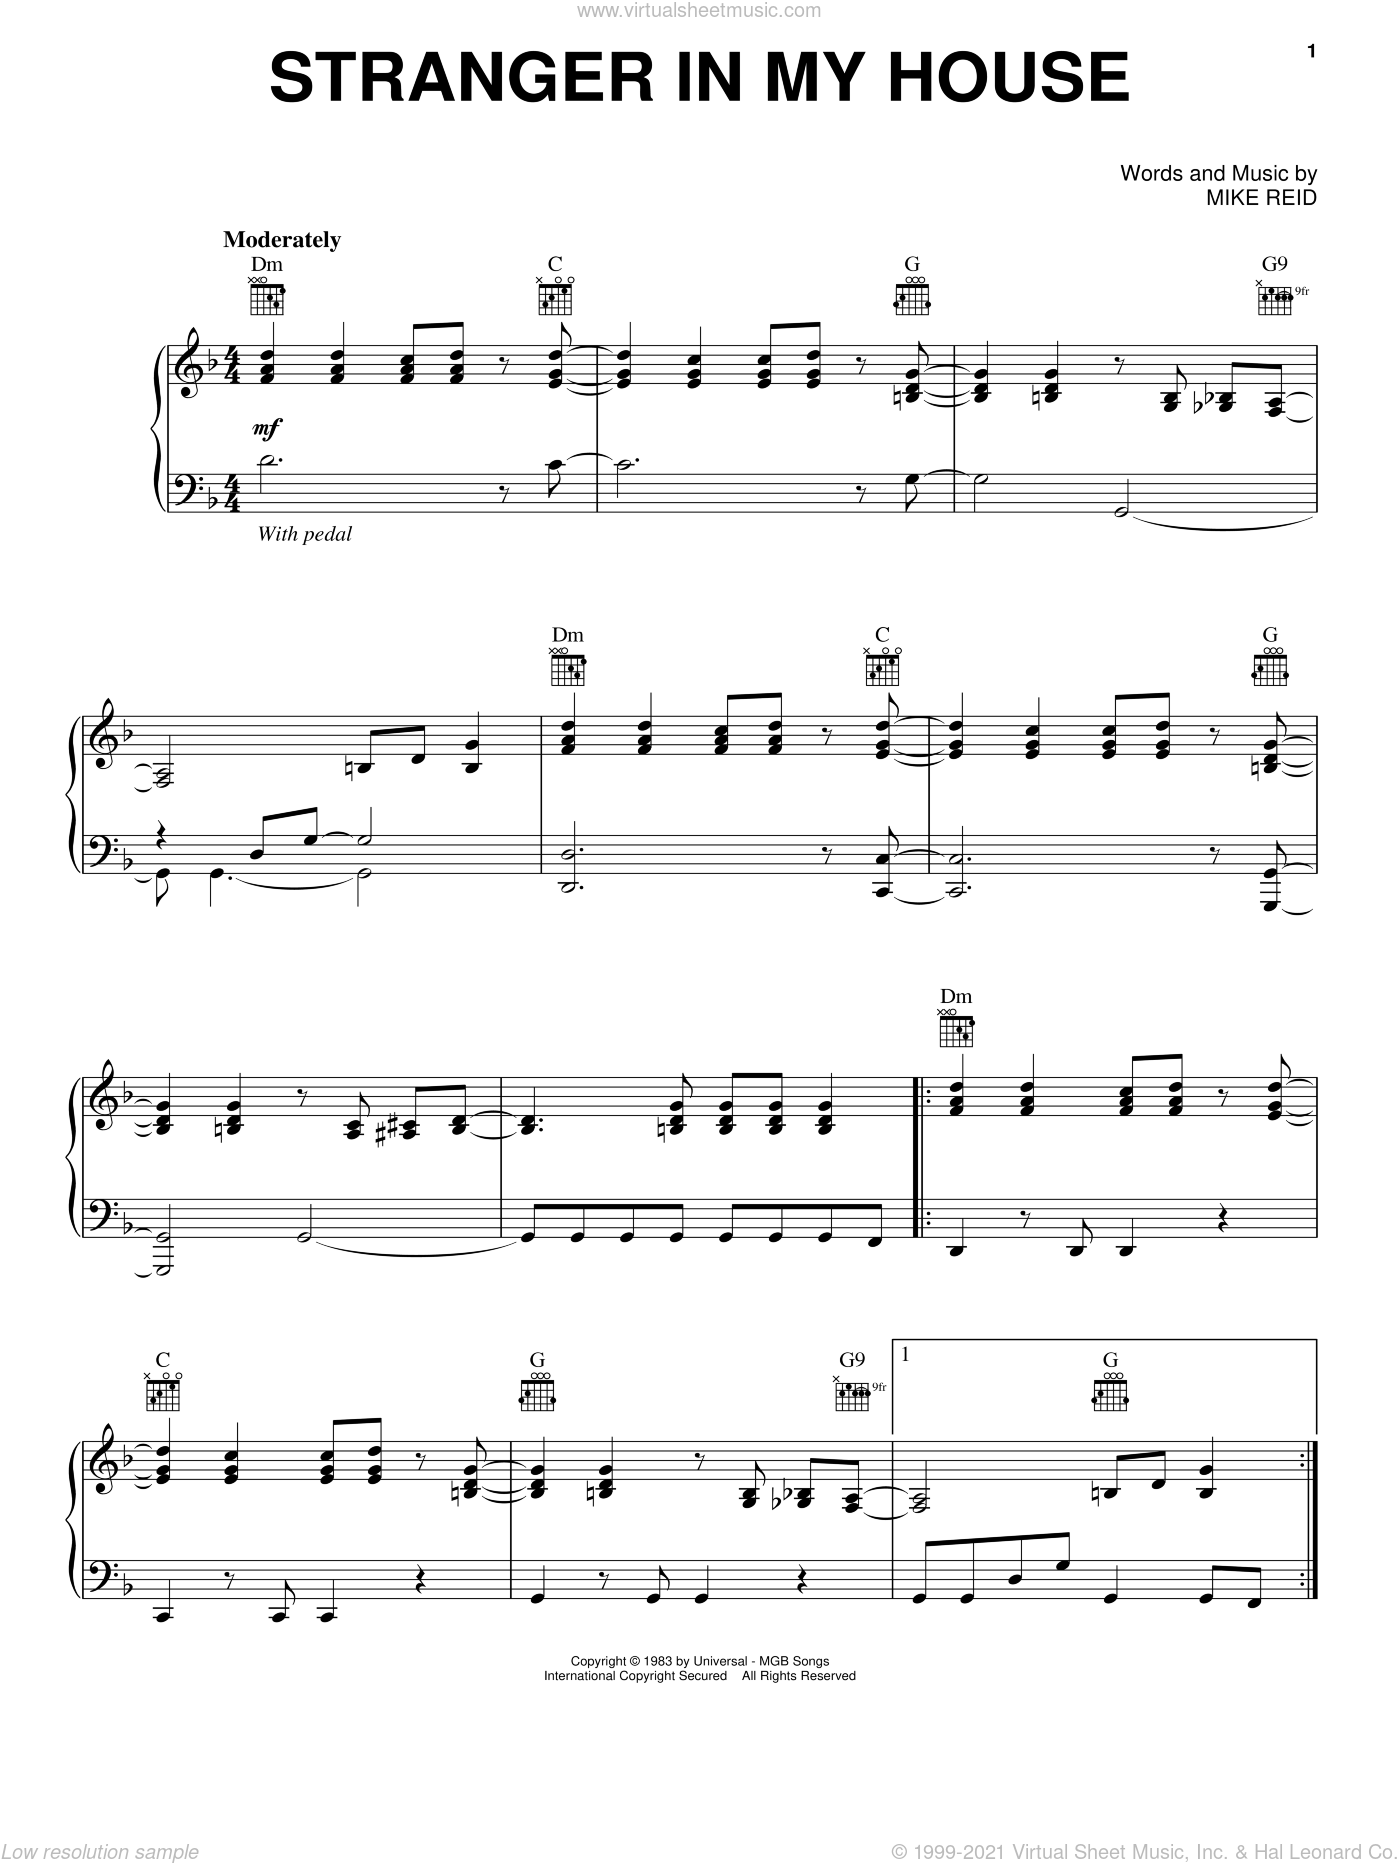 Stranger In My House sheet music for voice, piano or guitar by Ronnie Milsap and Mike Reid, intermediate skill level